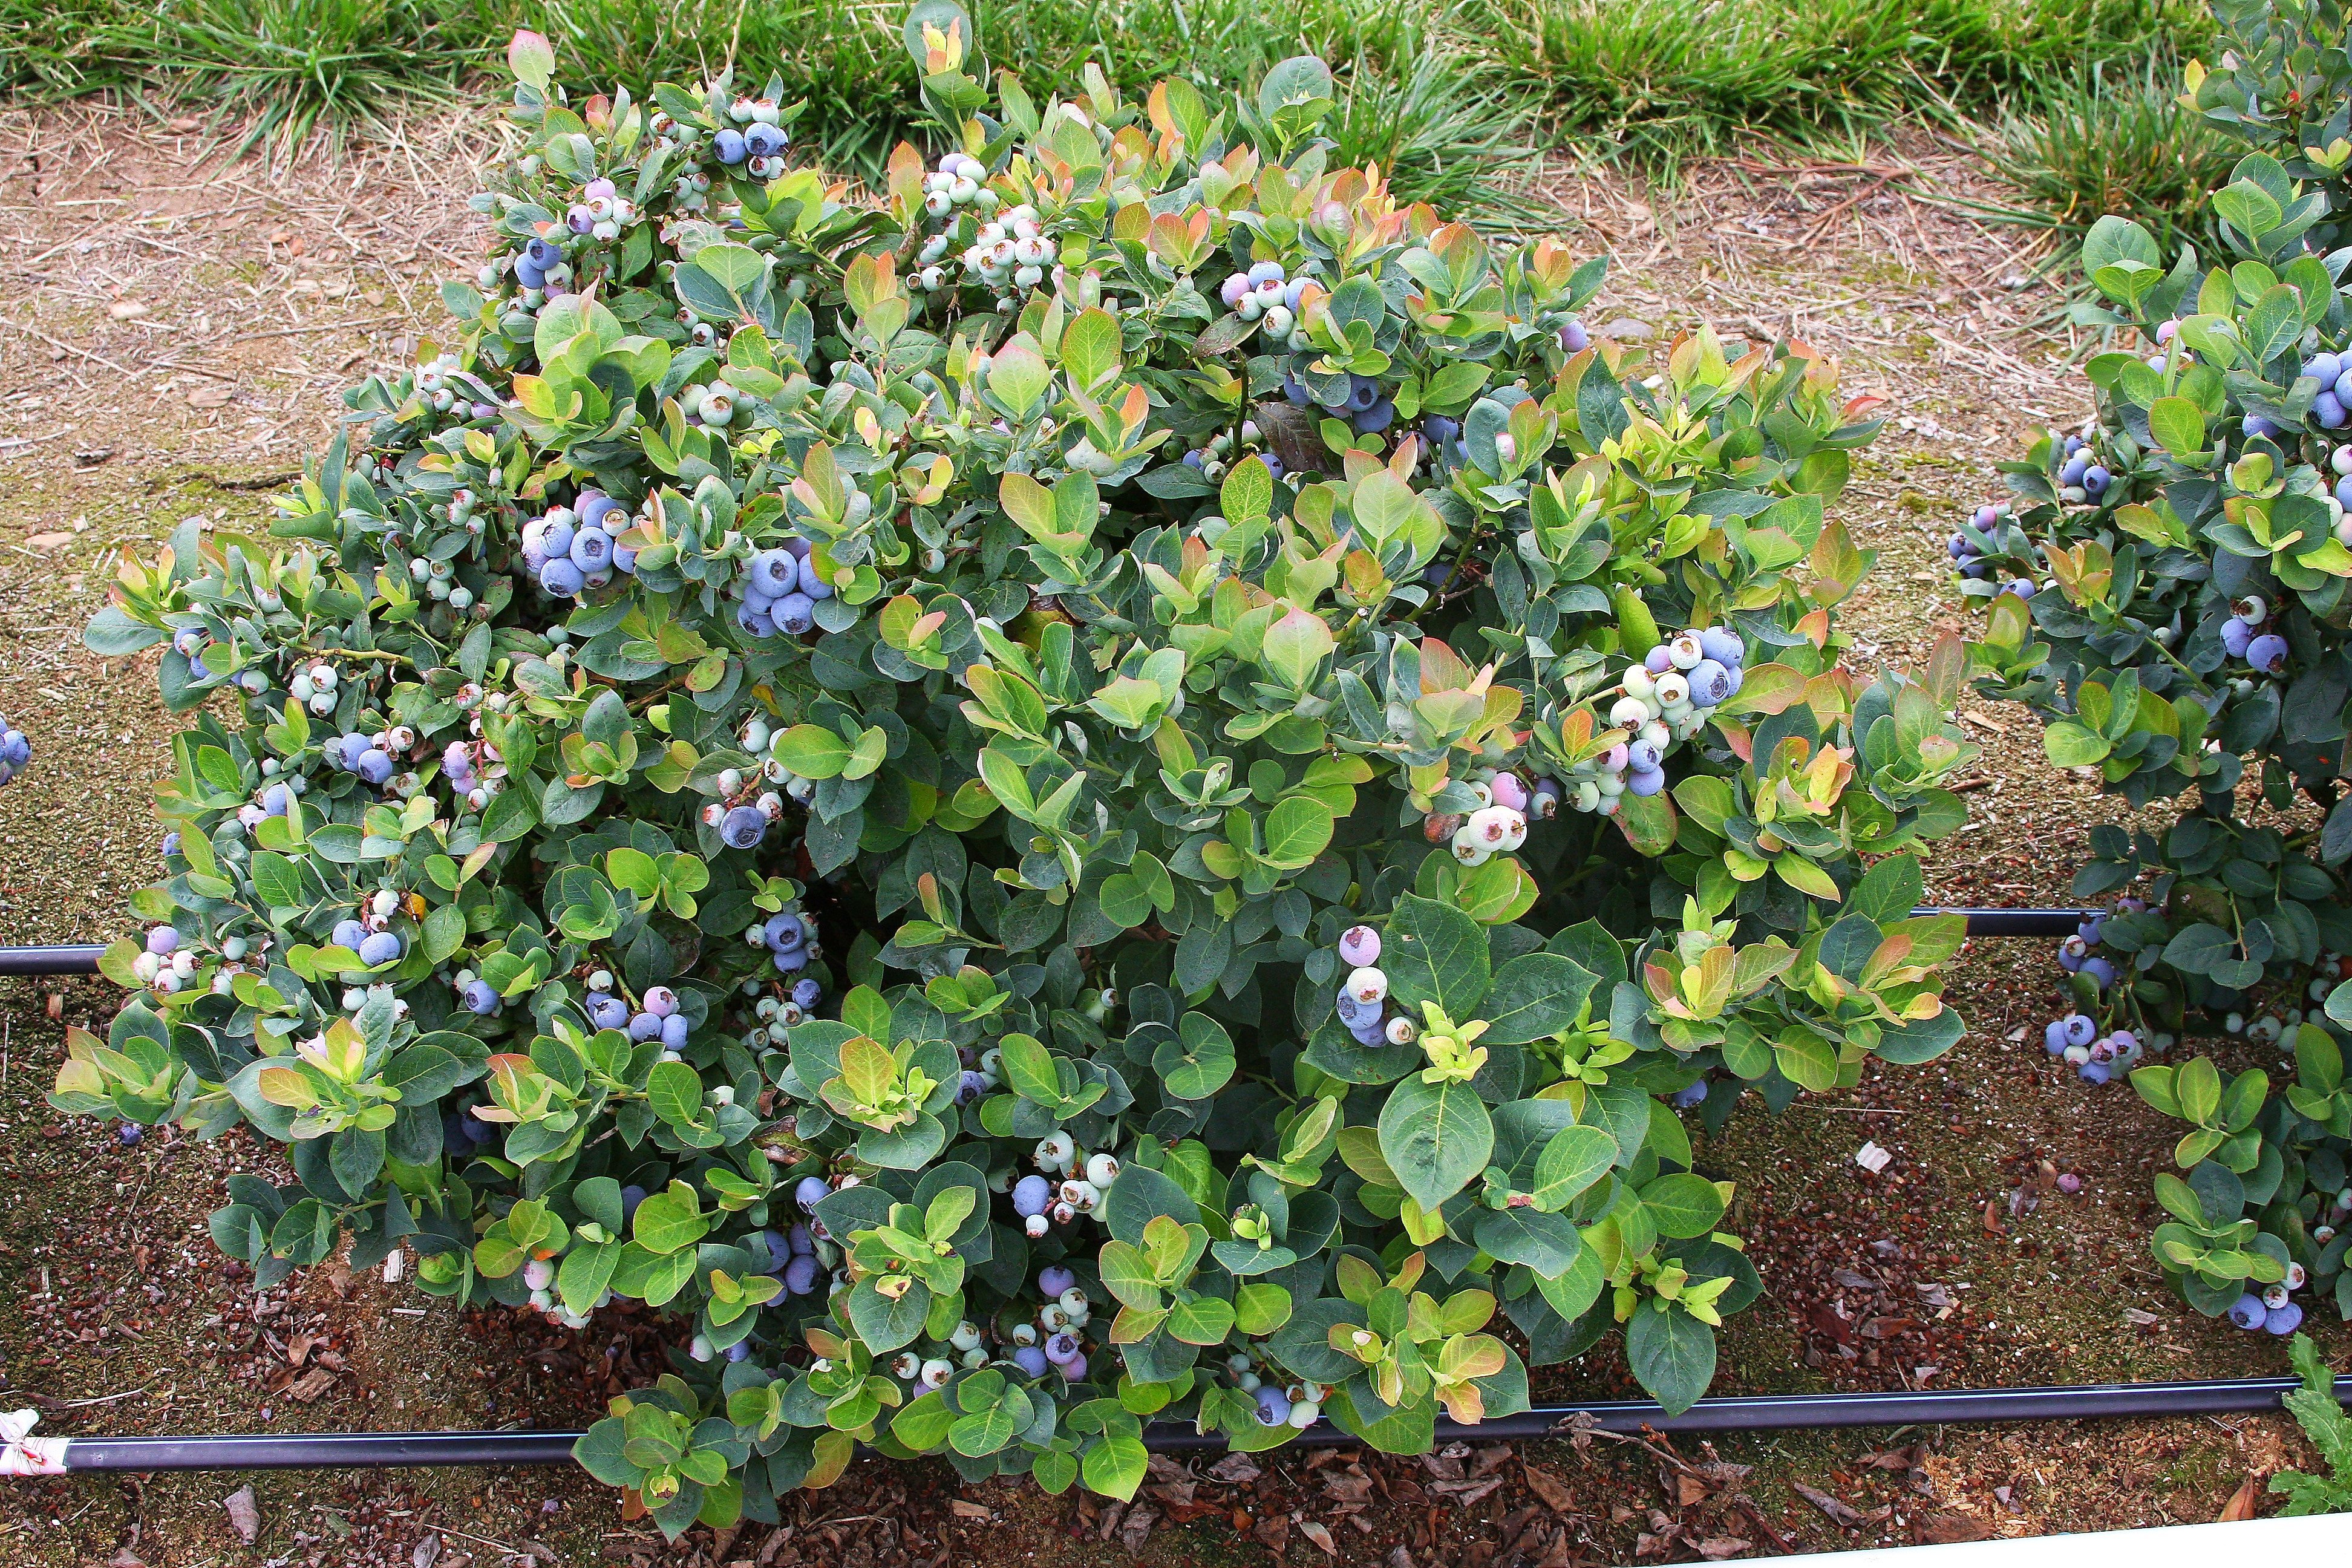 Espoma soil acidifier, Holly-tone, growing blueberries, Brazelberries Peach Sorbet